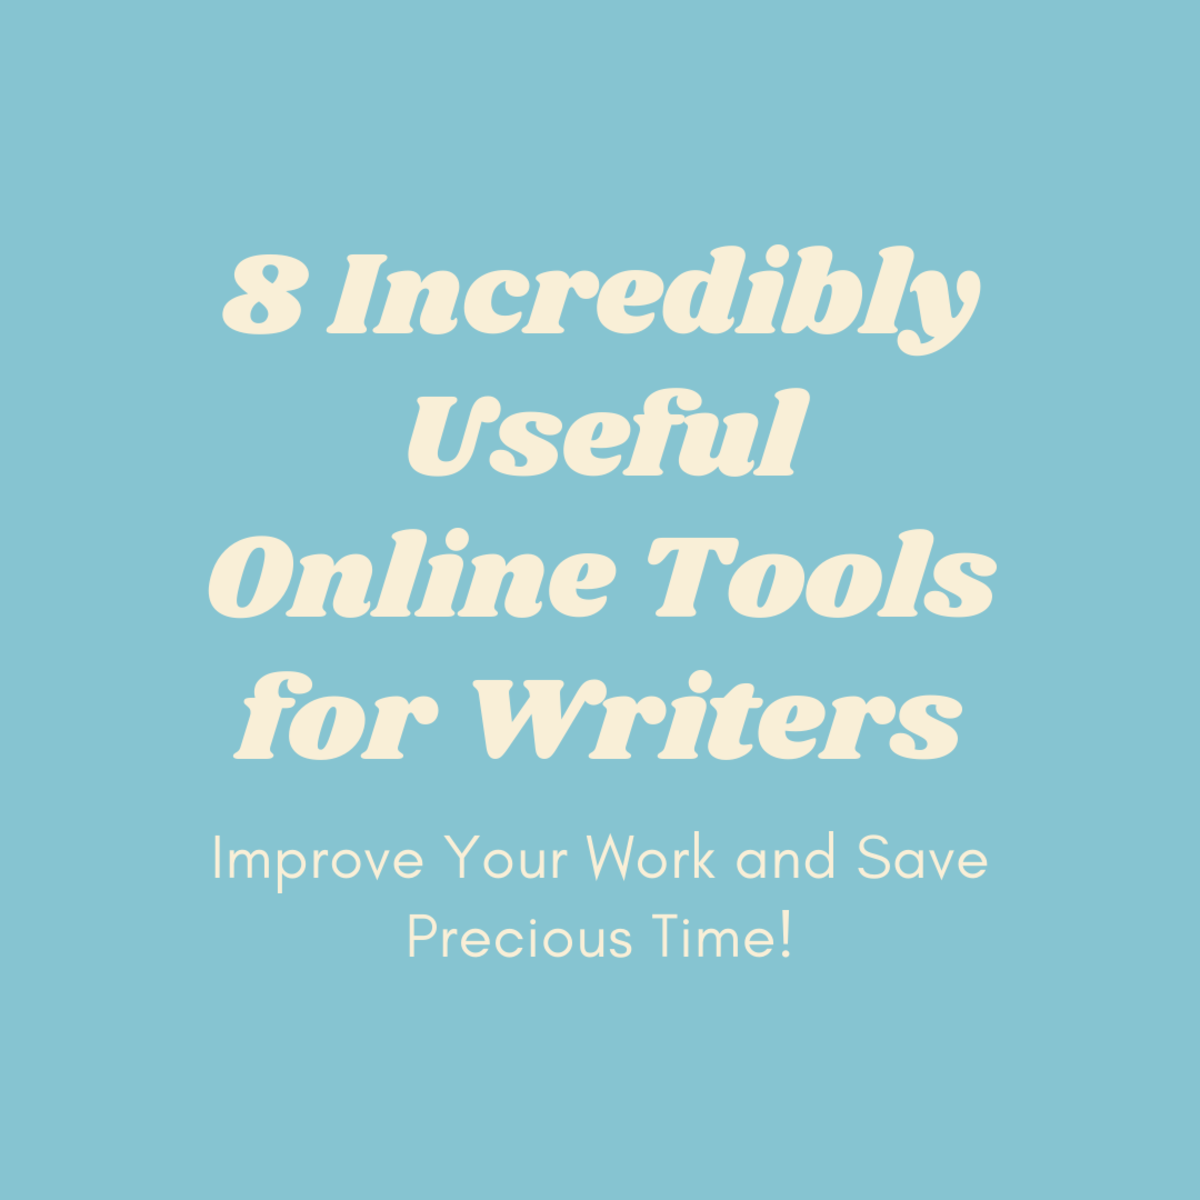 8 Incredibly Useful Online Tools for Writers